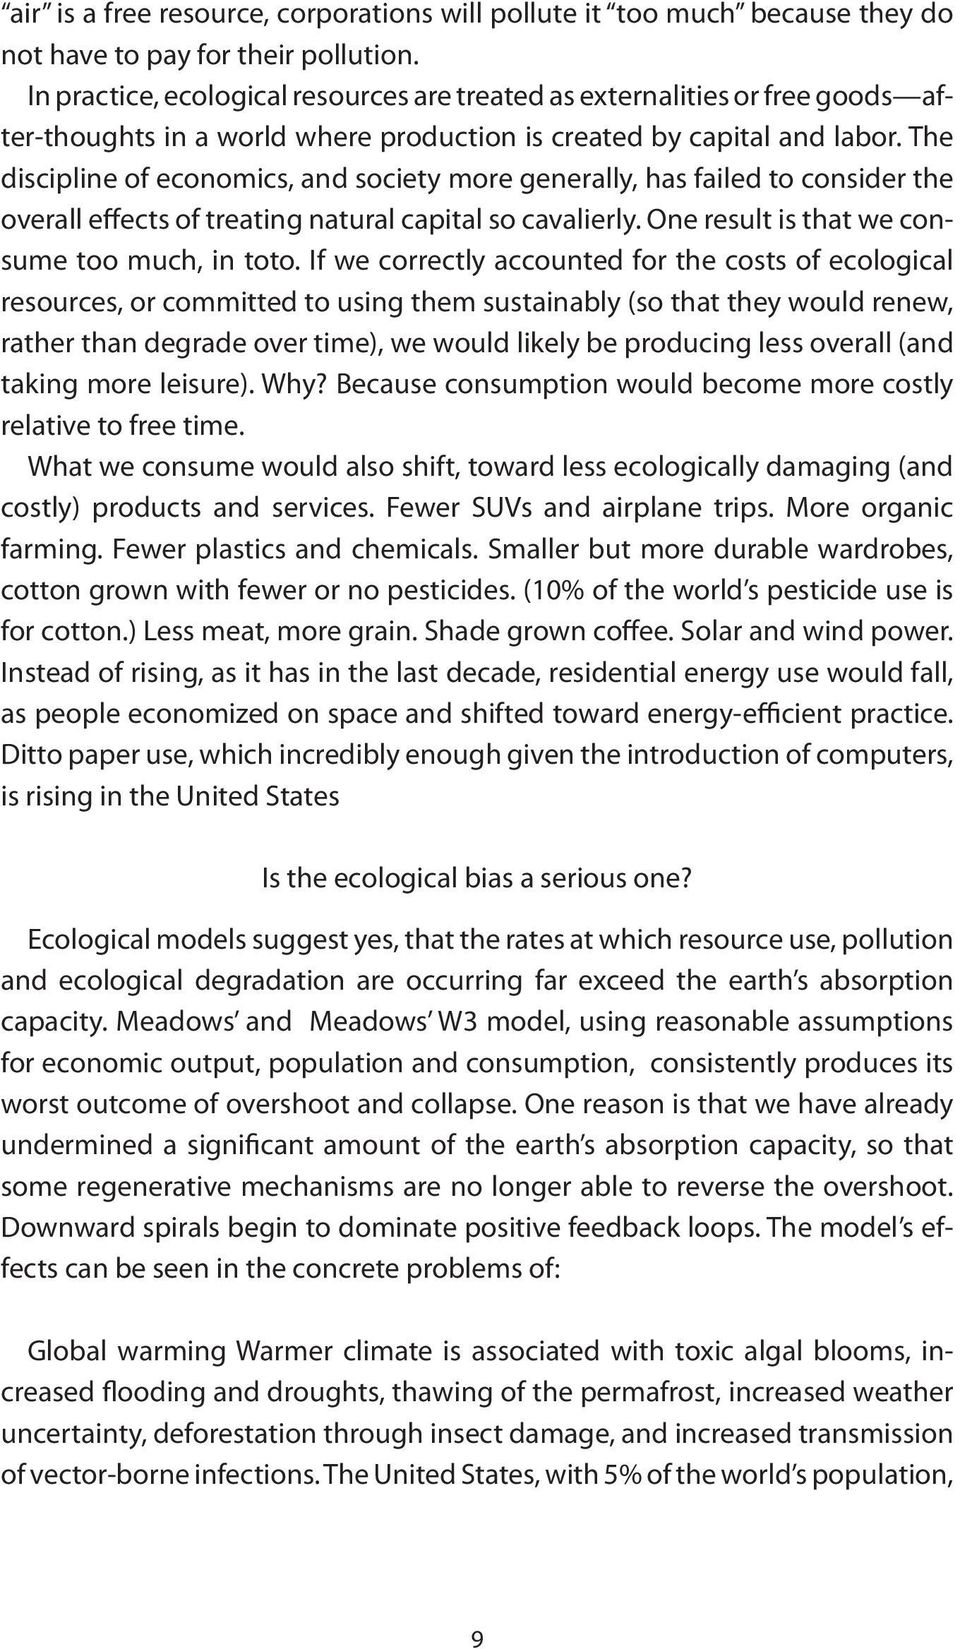 The discipline of economics, and society more generally, has failed to consider the overall effects of treating natural capital so cavalierly. One result is that we consume too much, in toto.